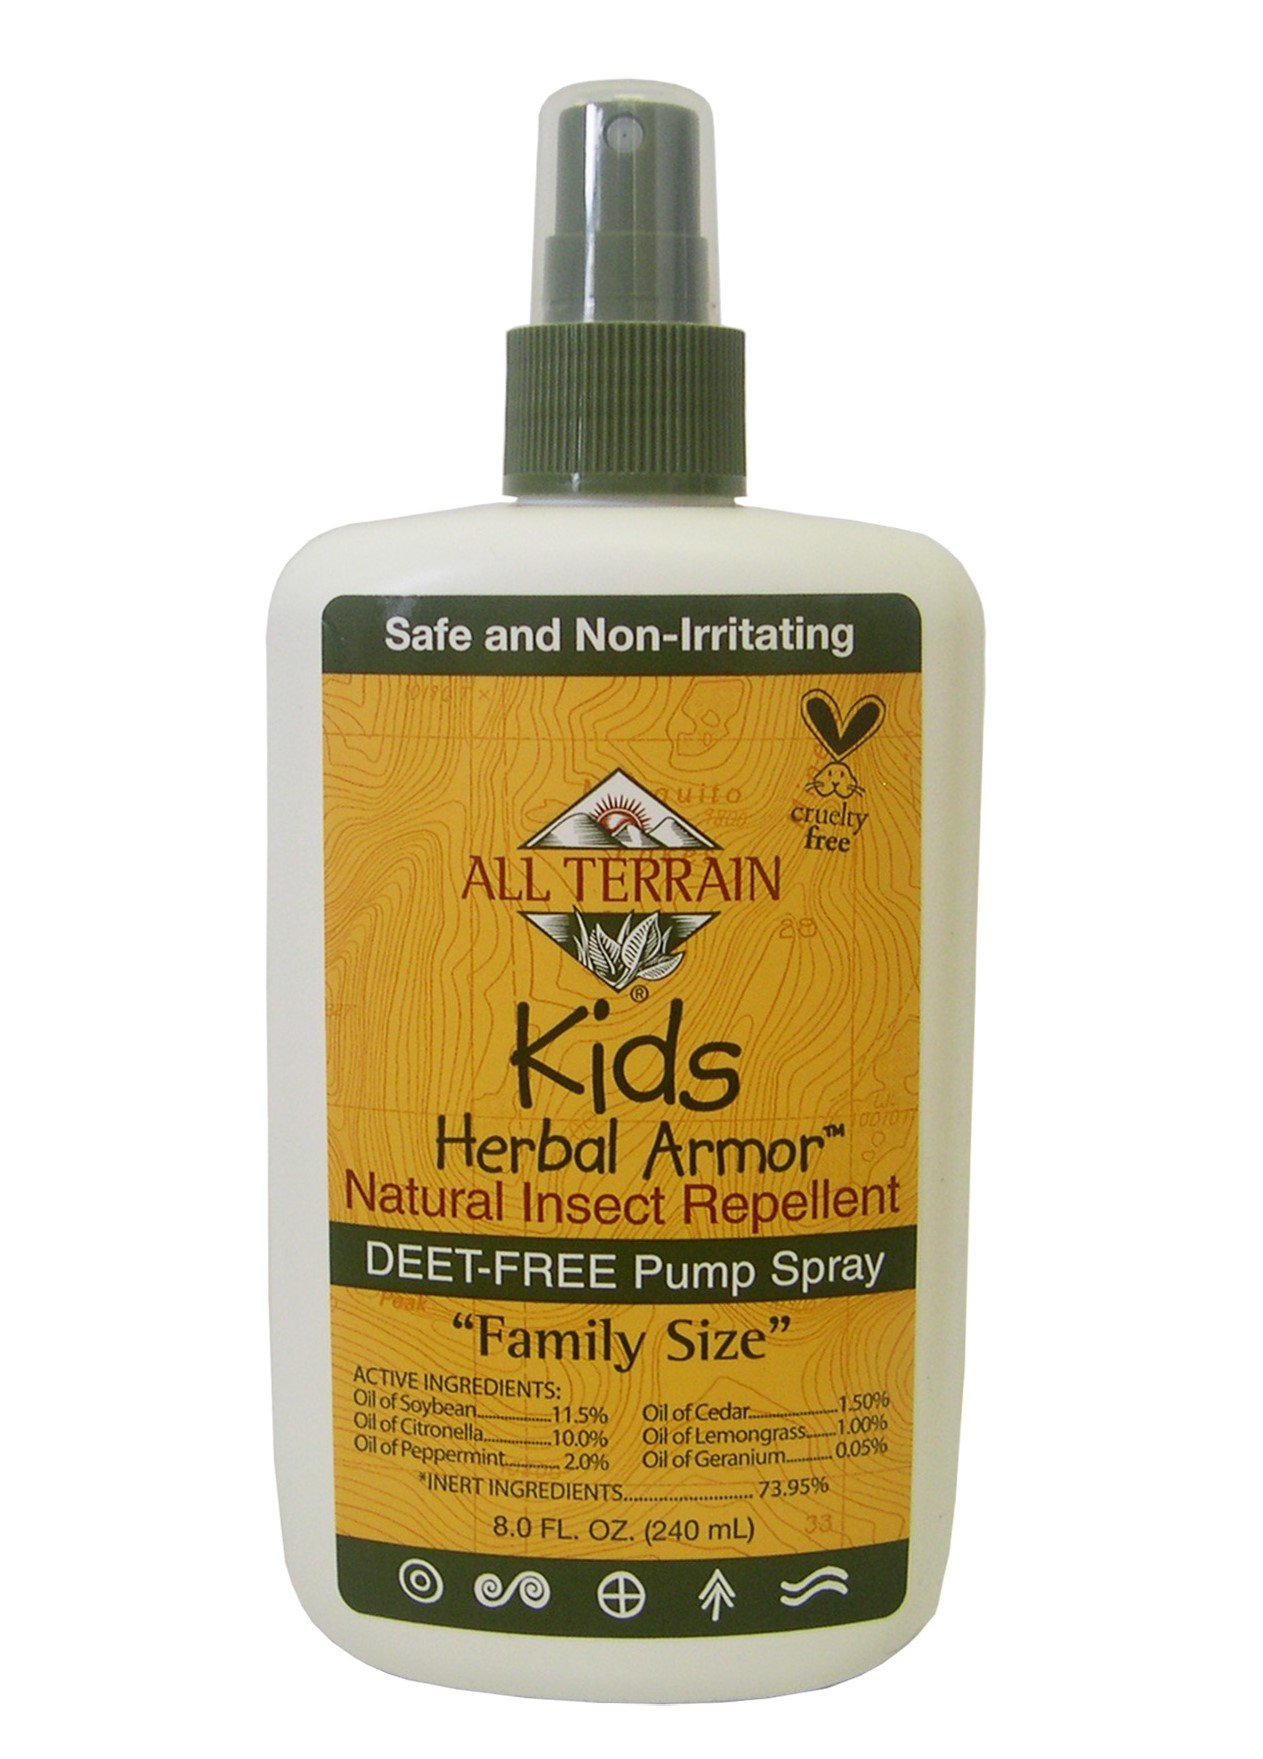 All Terrain Kids Herbal Armor Natural DEET-Free Insect Repellant, Pump Spray, 8 Ounce, Family-Size by All Terrain